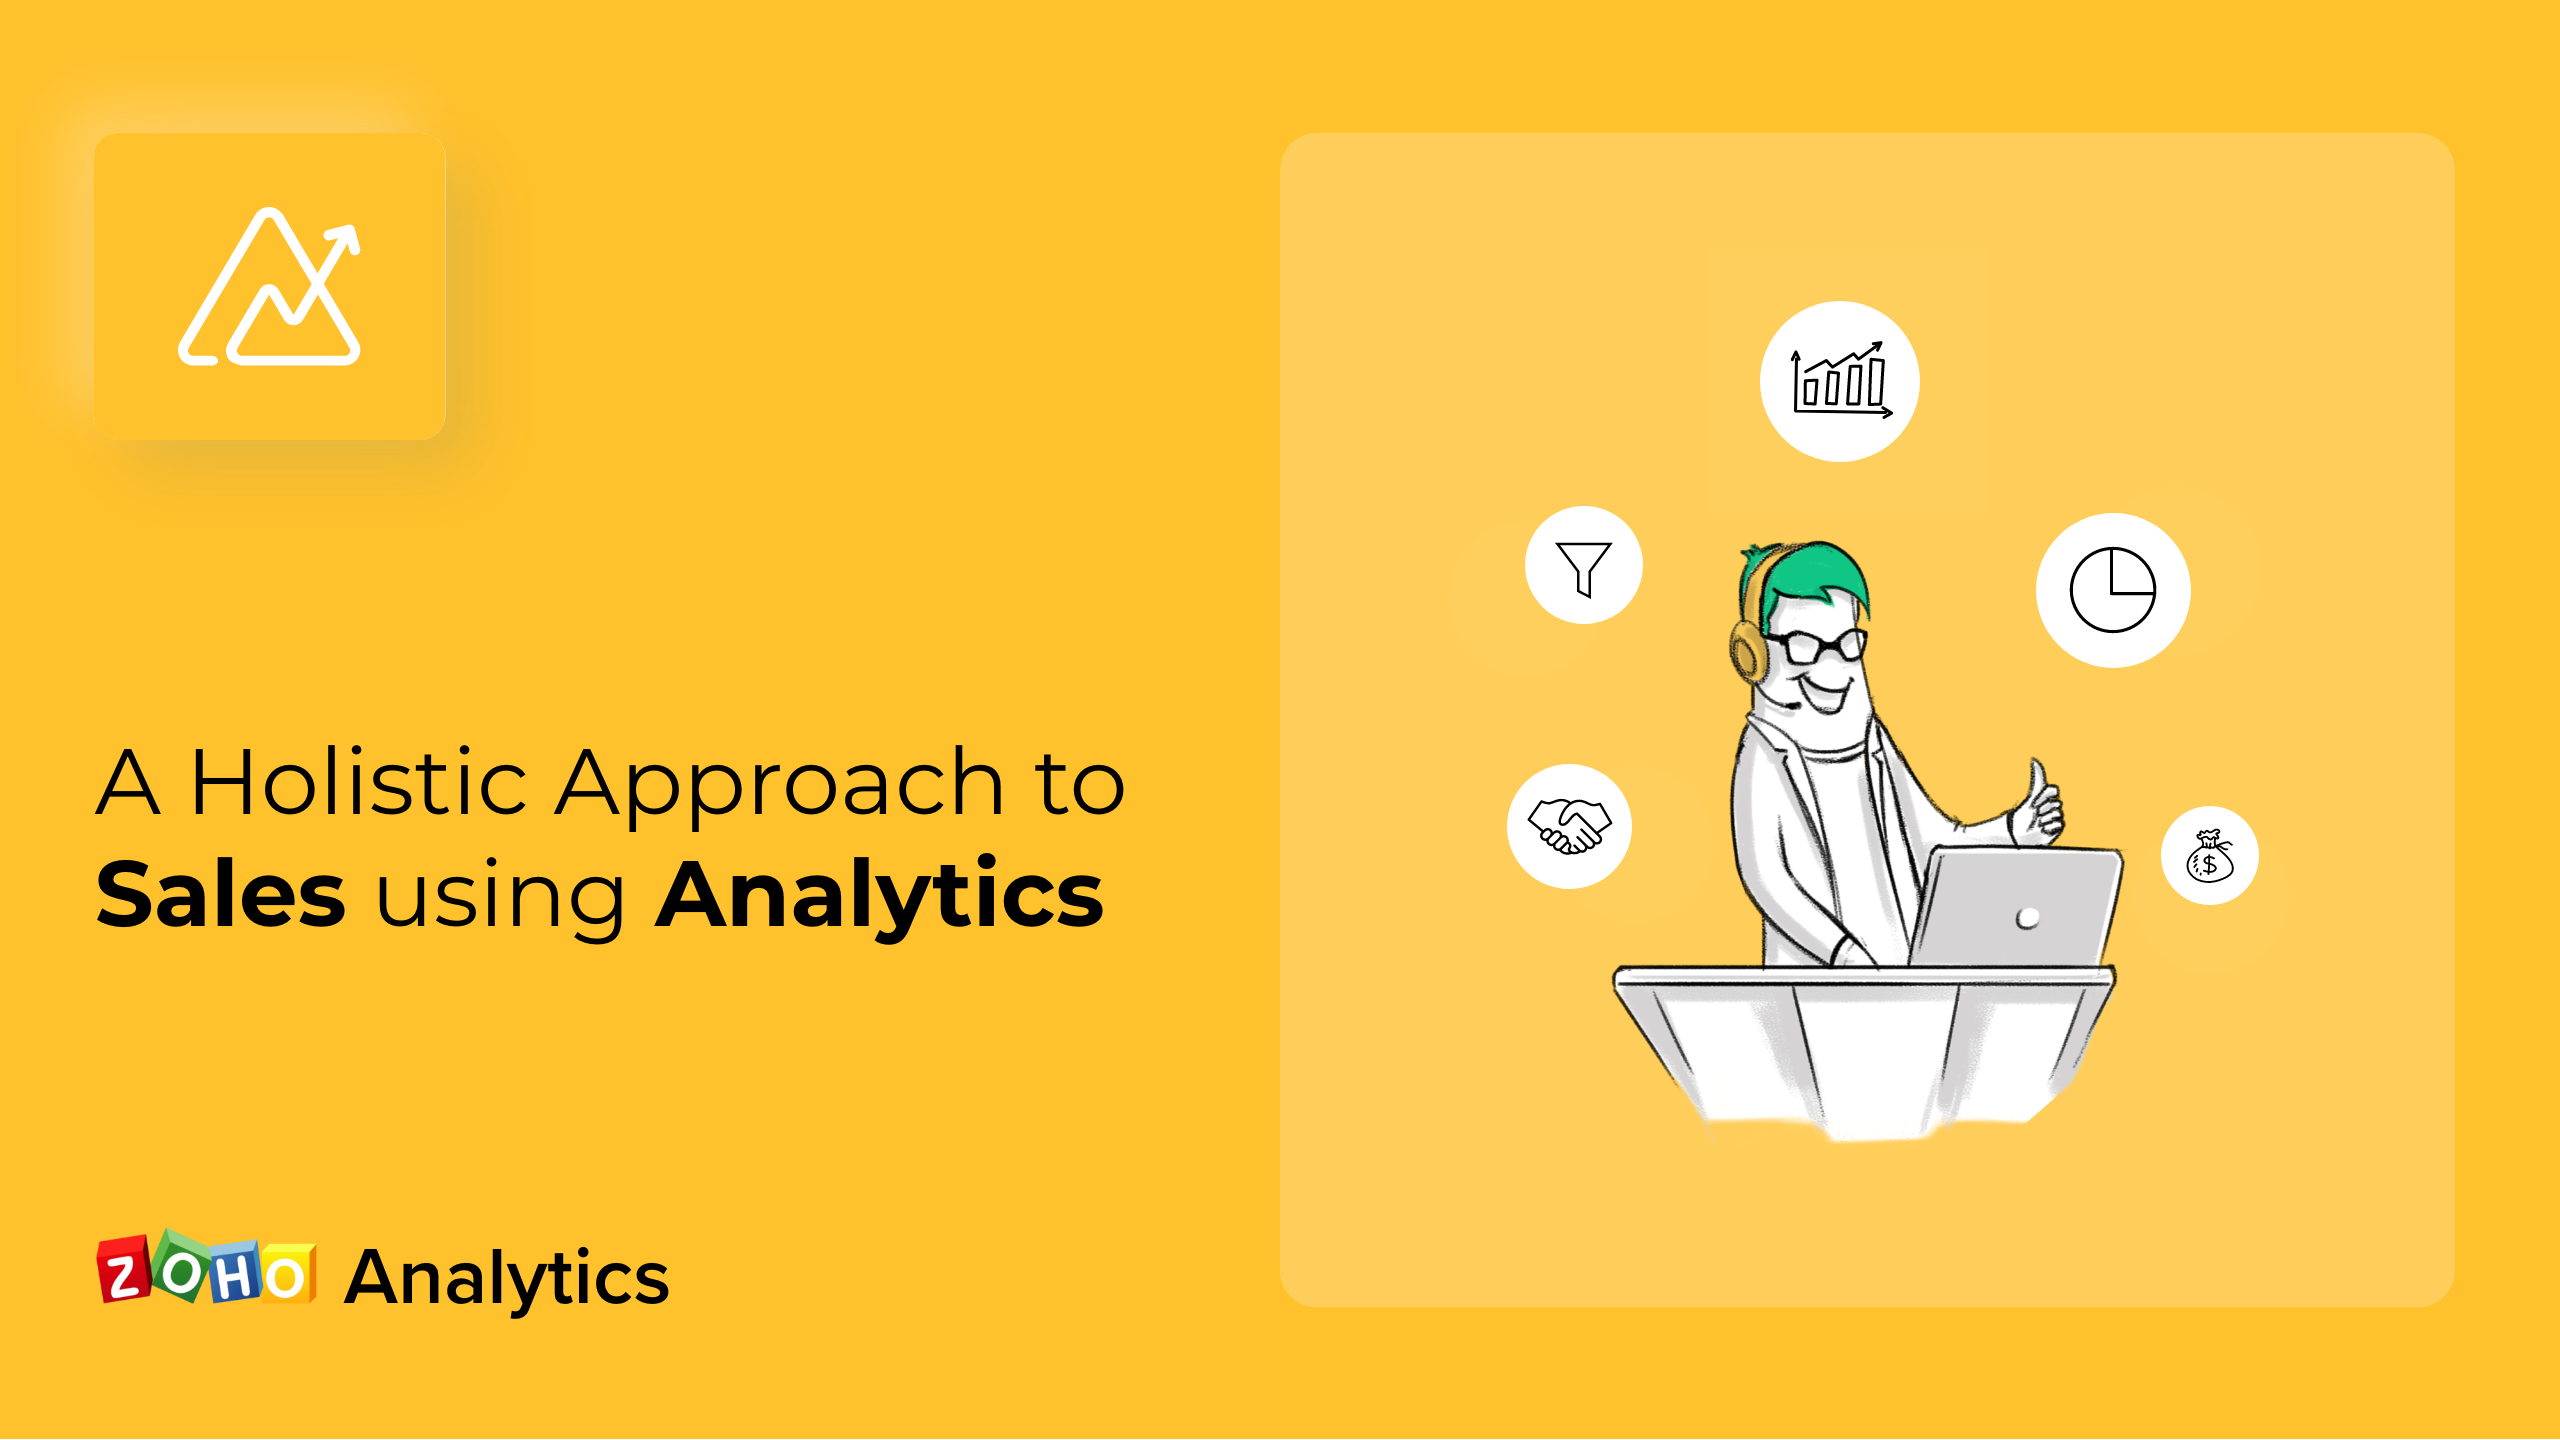 A Holistic Approach to Sales using CRM and Analytics